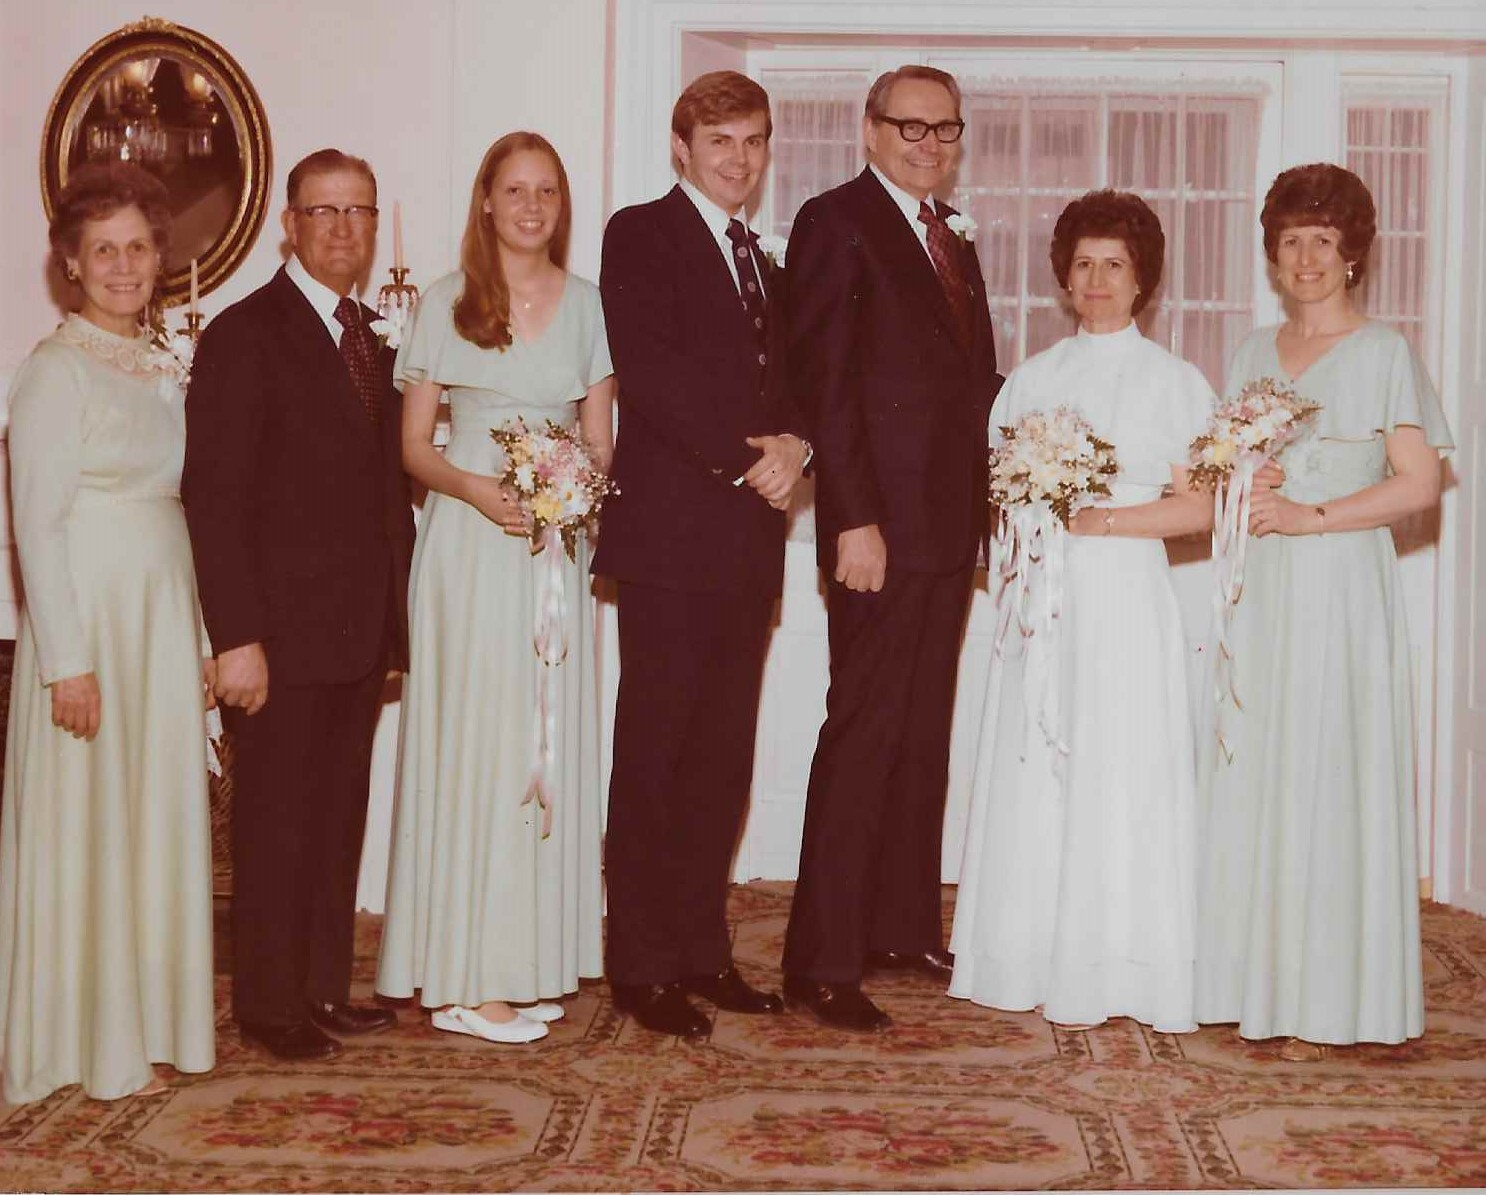 Elder L. Tom Perry and his new bride, Sister Barbara Taylor Perry, stand in the reception line following their April 28, 1976, wedding.